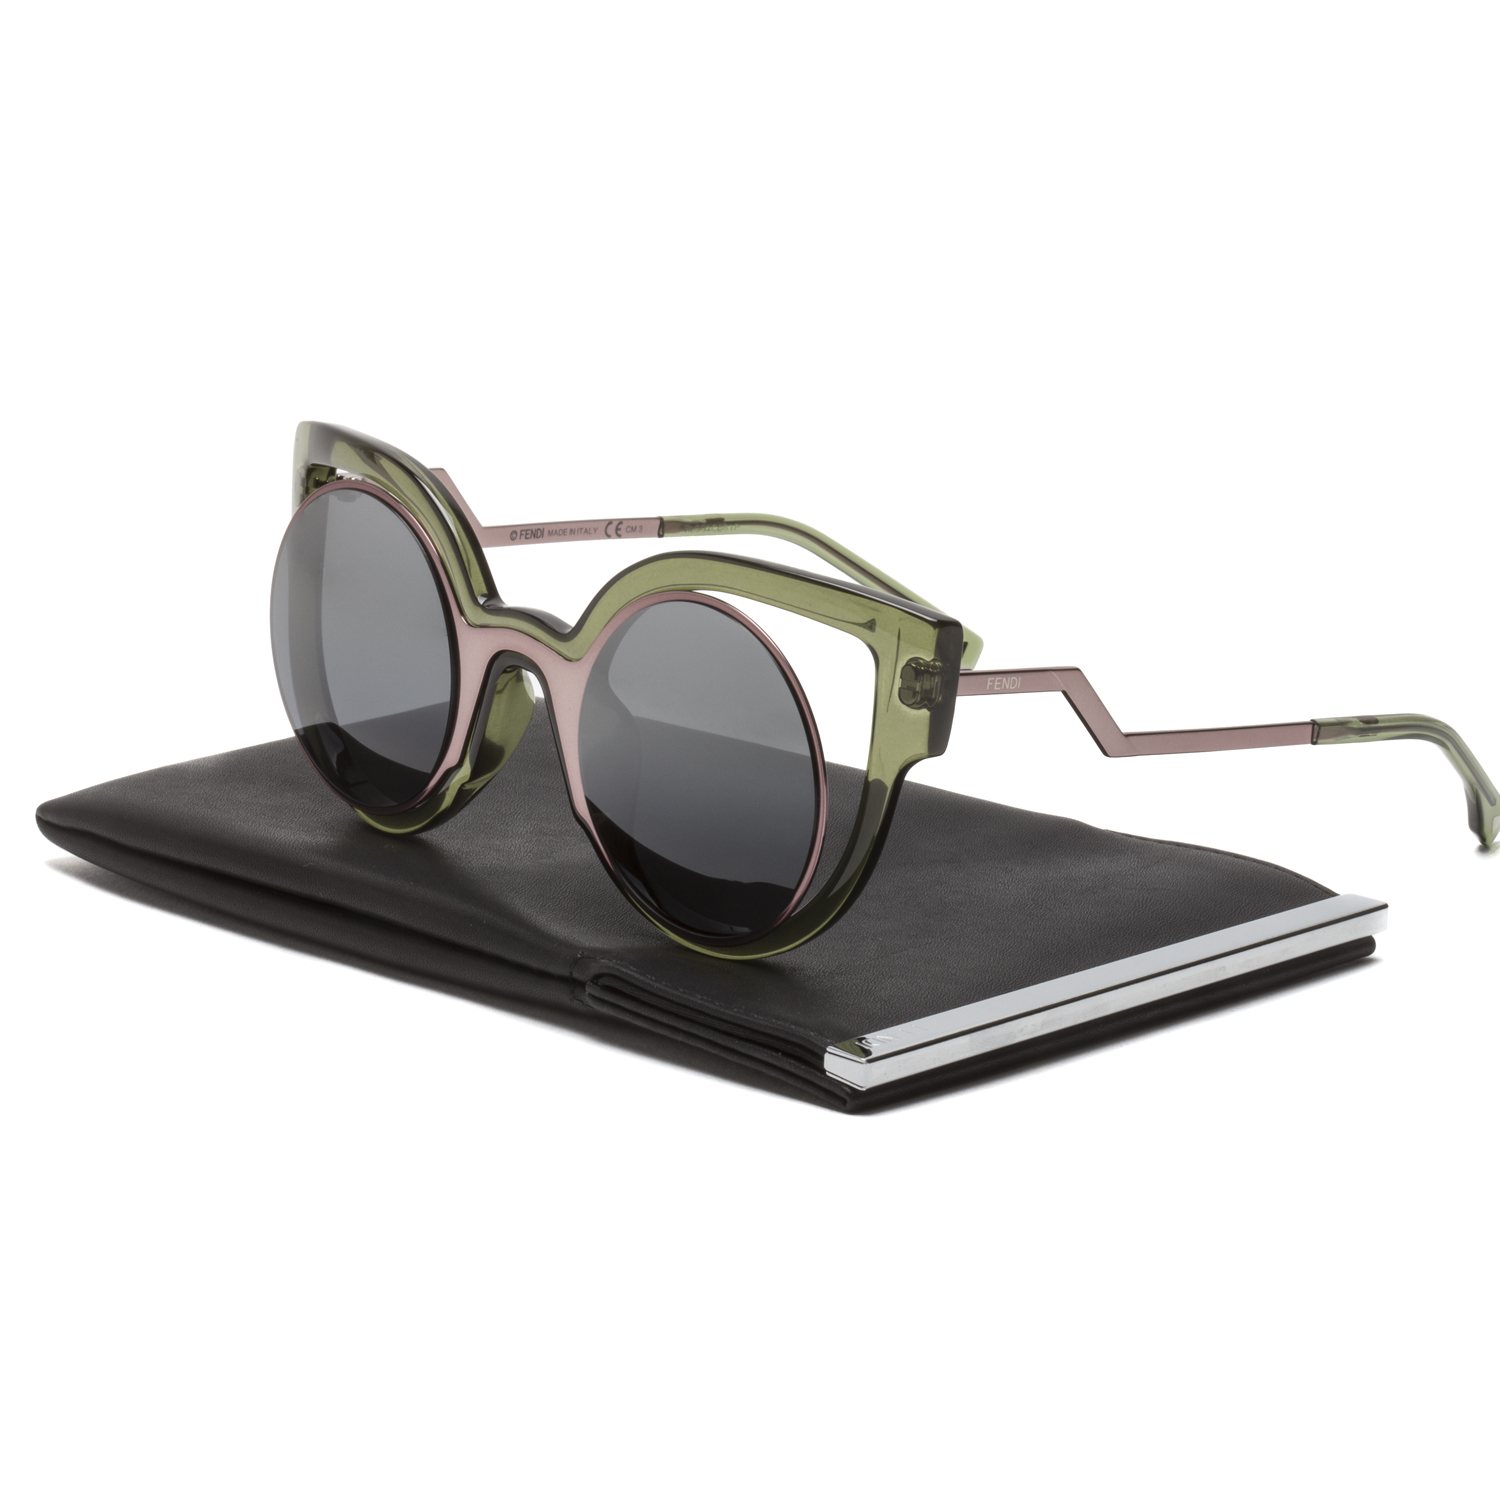 ac3286369d9 Details about Fendi FF 0137 S Paradeyes Womens Sunglasses NTACN Pink Olive  Green   Dark Grey